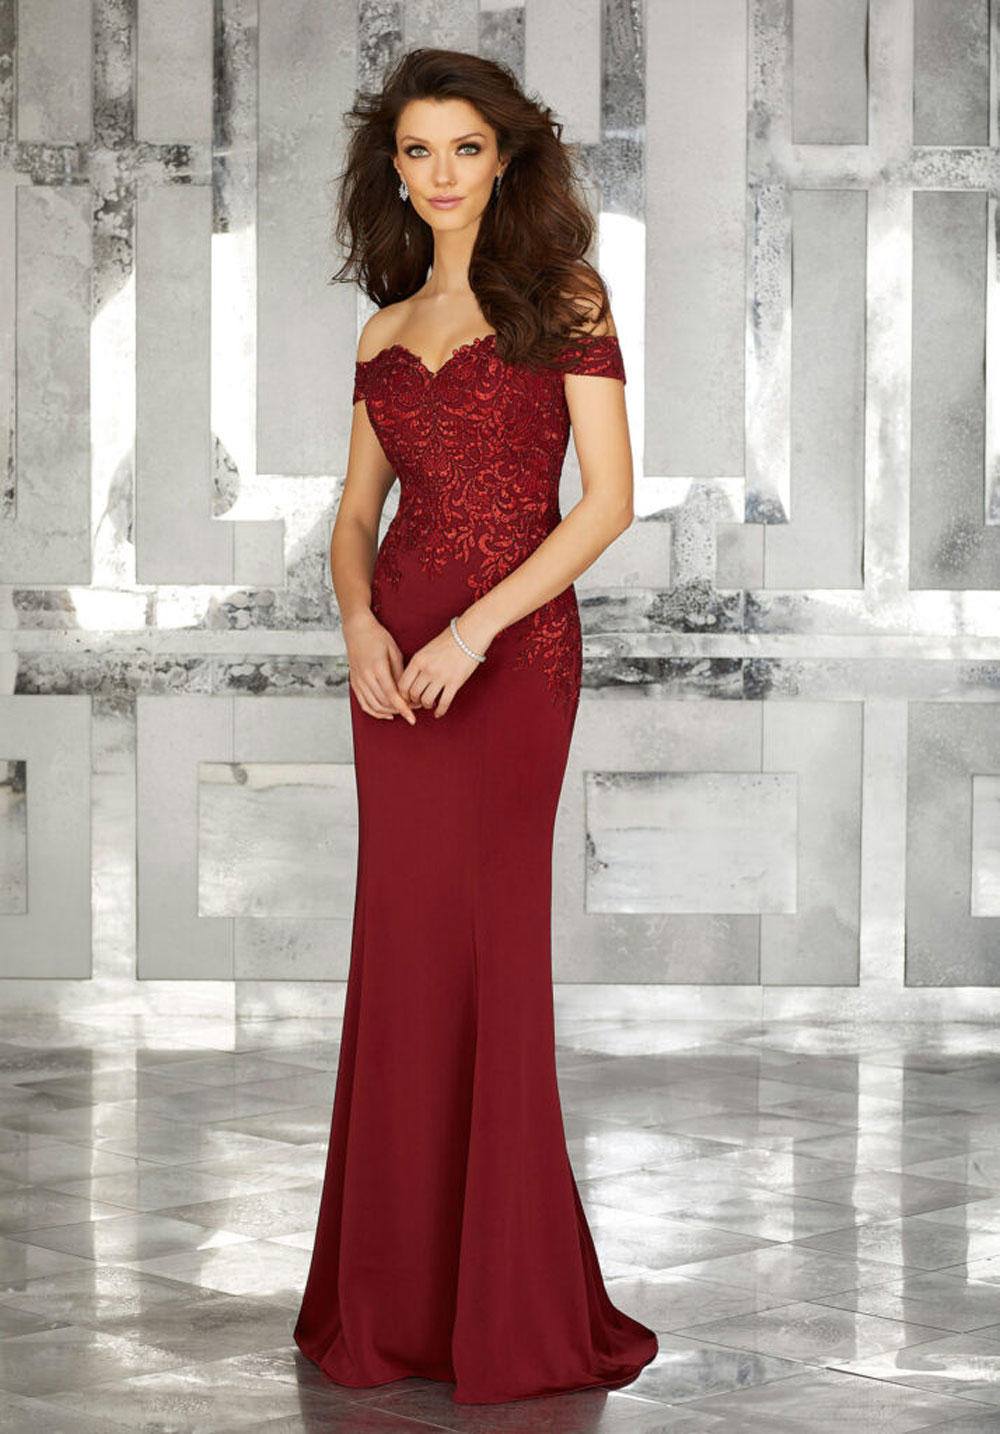 Crepe evening dress with lace appliqués